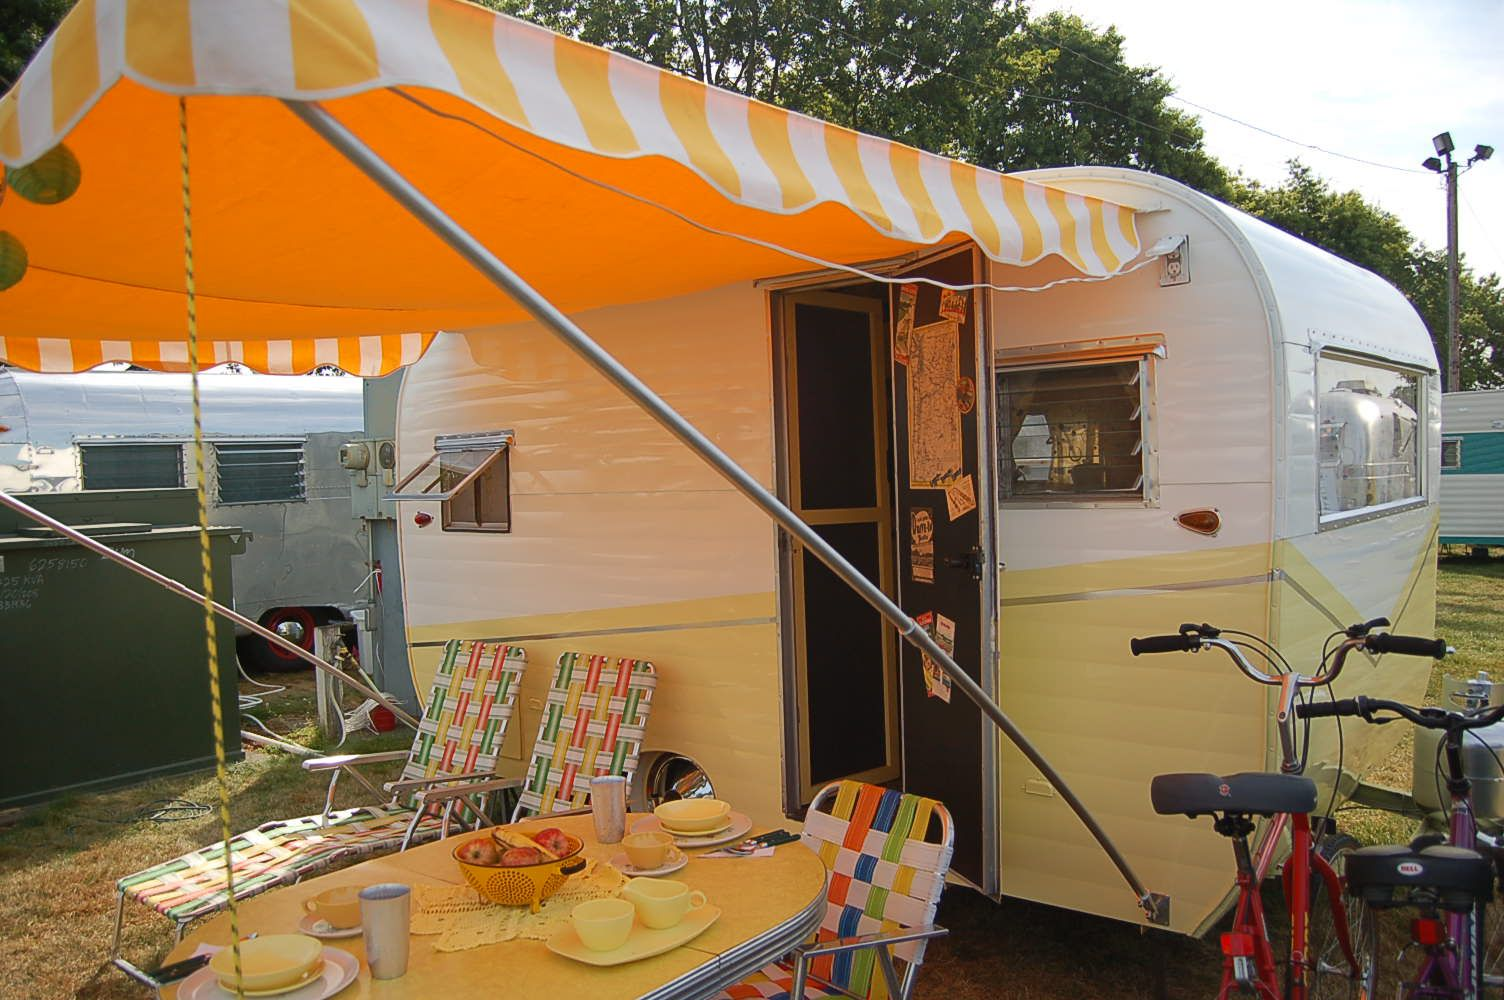 Vintage Aloha Trailer Pictures And History From Oldtrailer Com Vintage Travel Trailers Vintage Travel Travel Trailer